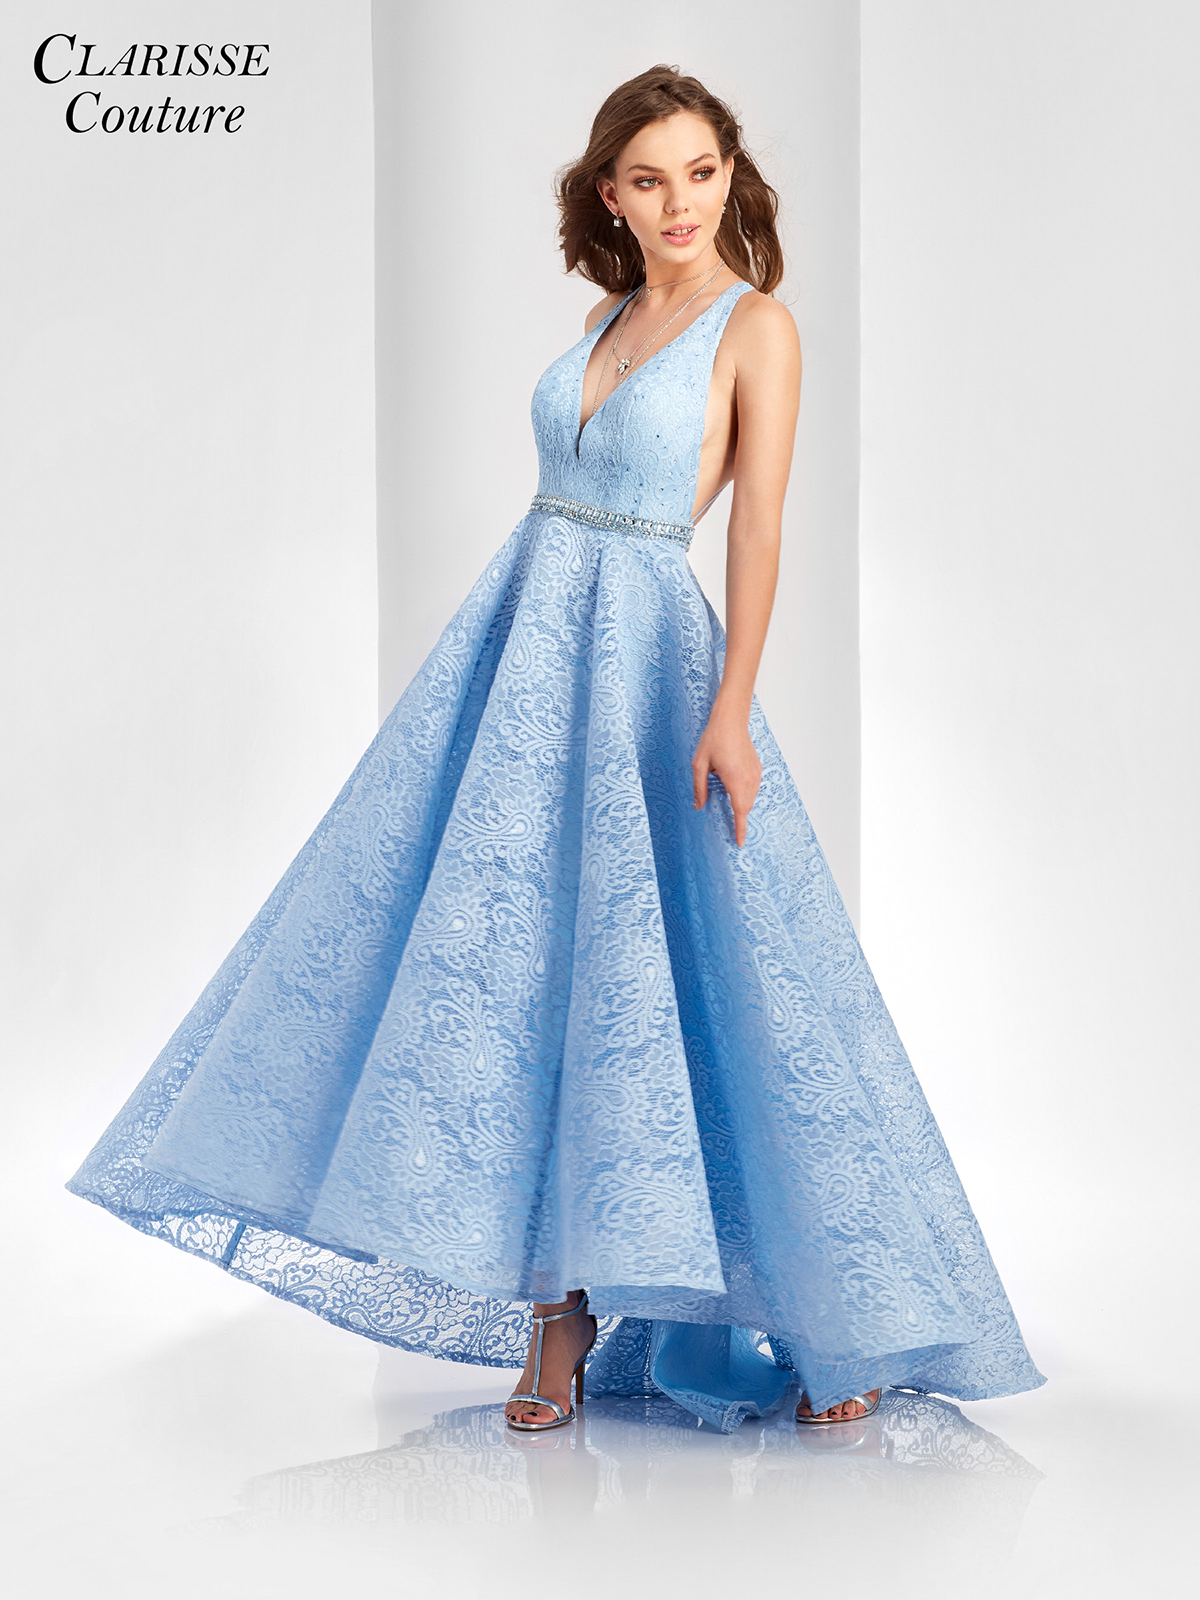 2018 Prom Dress Clarisse 4936 | Promgirl.net